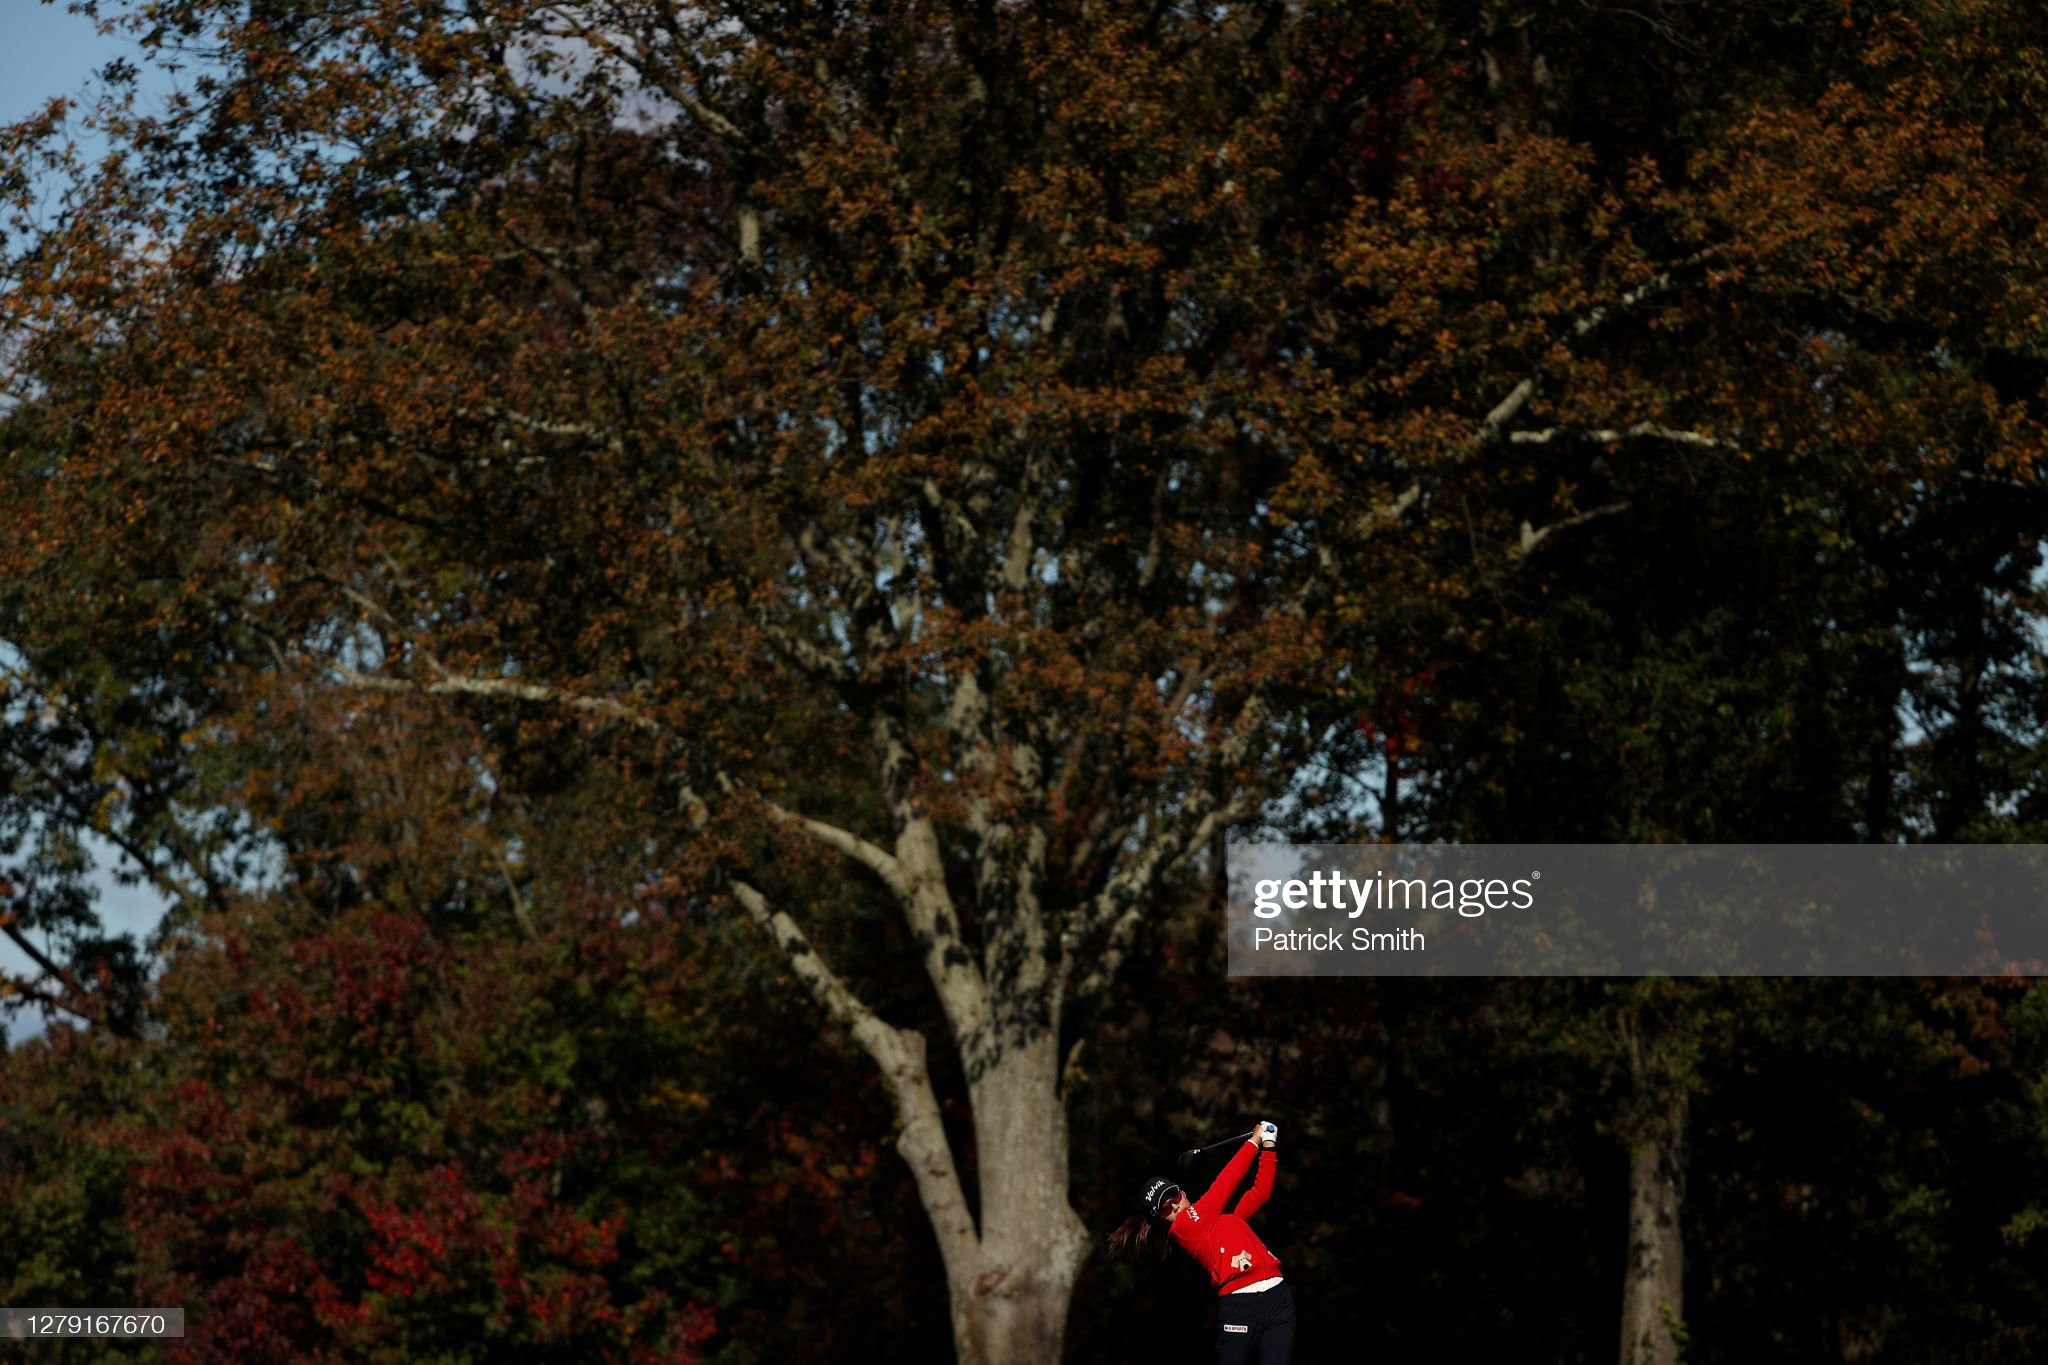 https://media.gettyimages.com/photos/mi-hyang-lee-of-korea-plays-her-shot-from-the-third-tee-during-the-picture-id1279167670?s=2048x2048